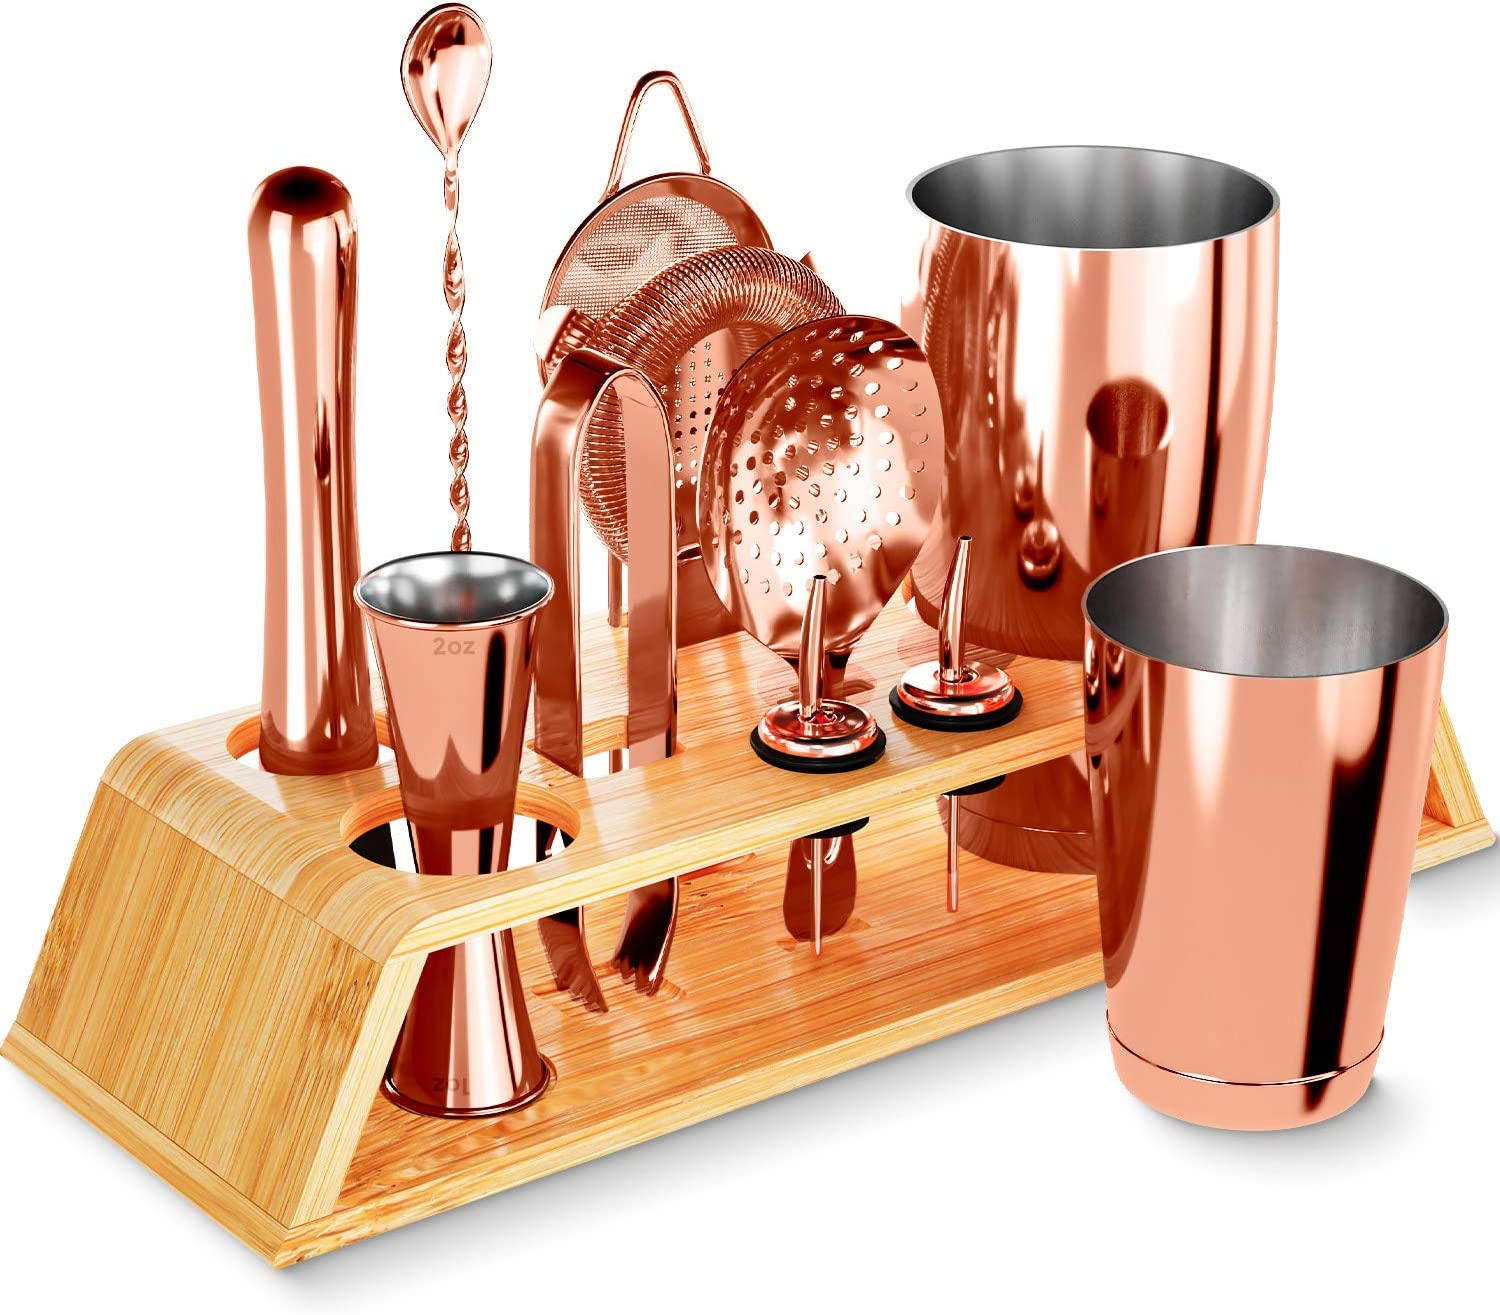 12-Piece Rose Gold Cocktail Shaker Set with Bamboo Stand, Weighted 18 & 28oz Boston Shakers and Bar Tools Set Using Premium Stainless Steel 304, The Perfect Bartending Mixing Kit for the Home or Bar